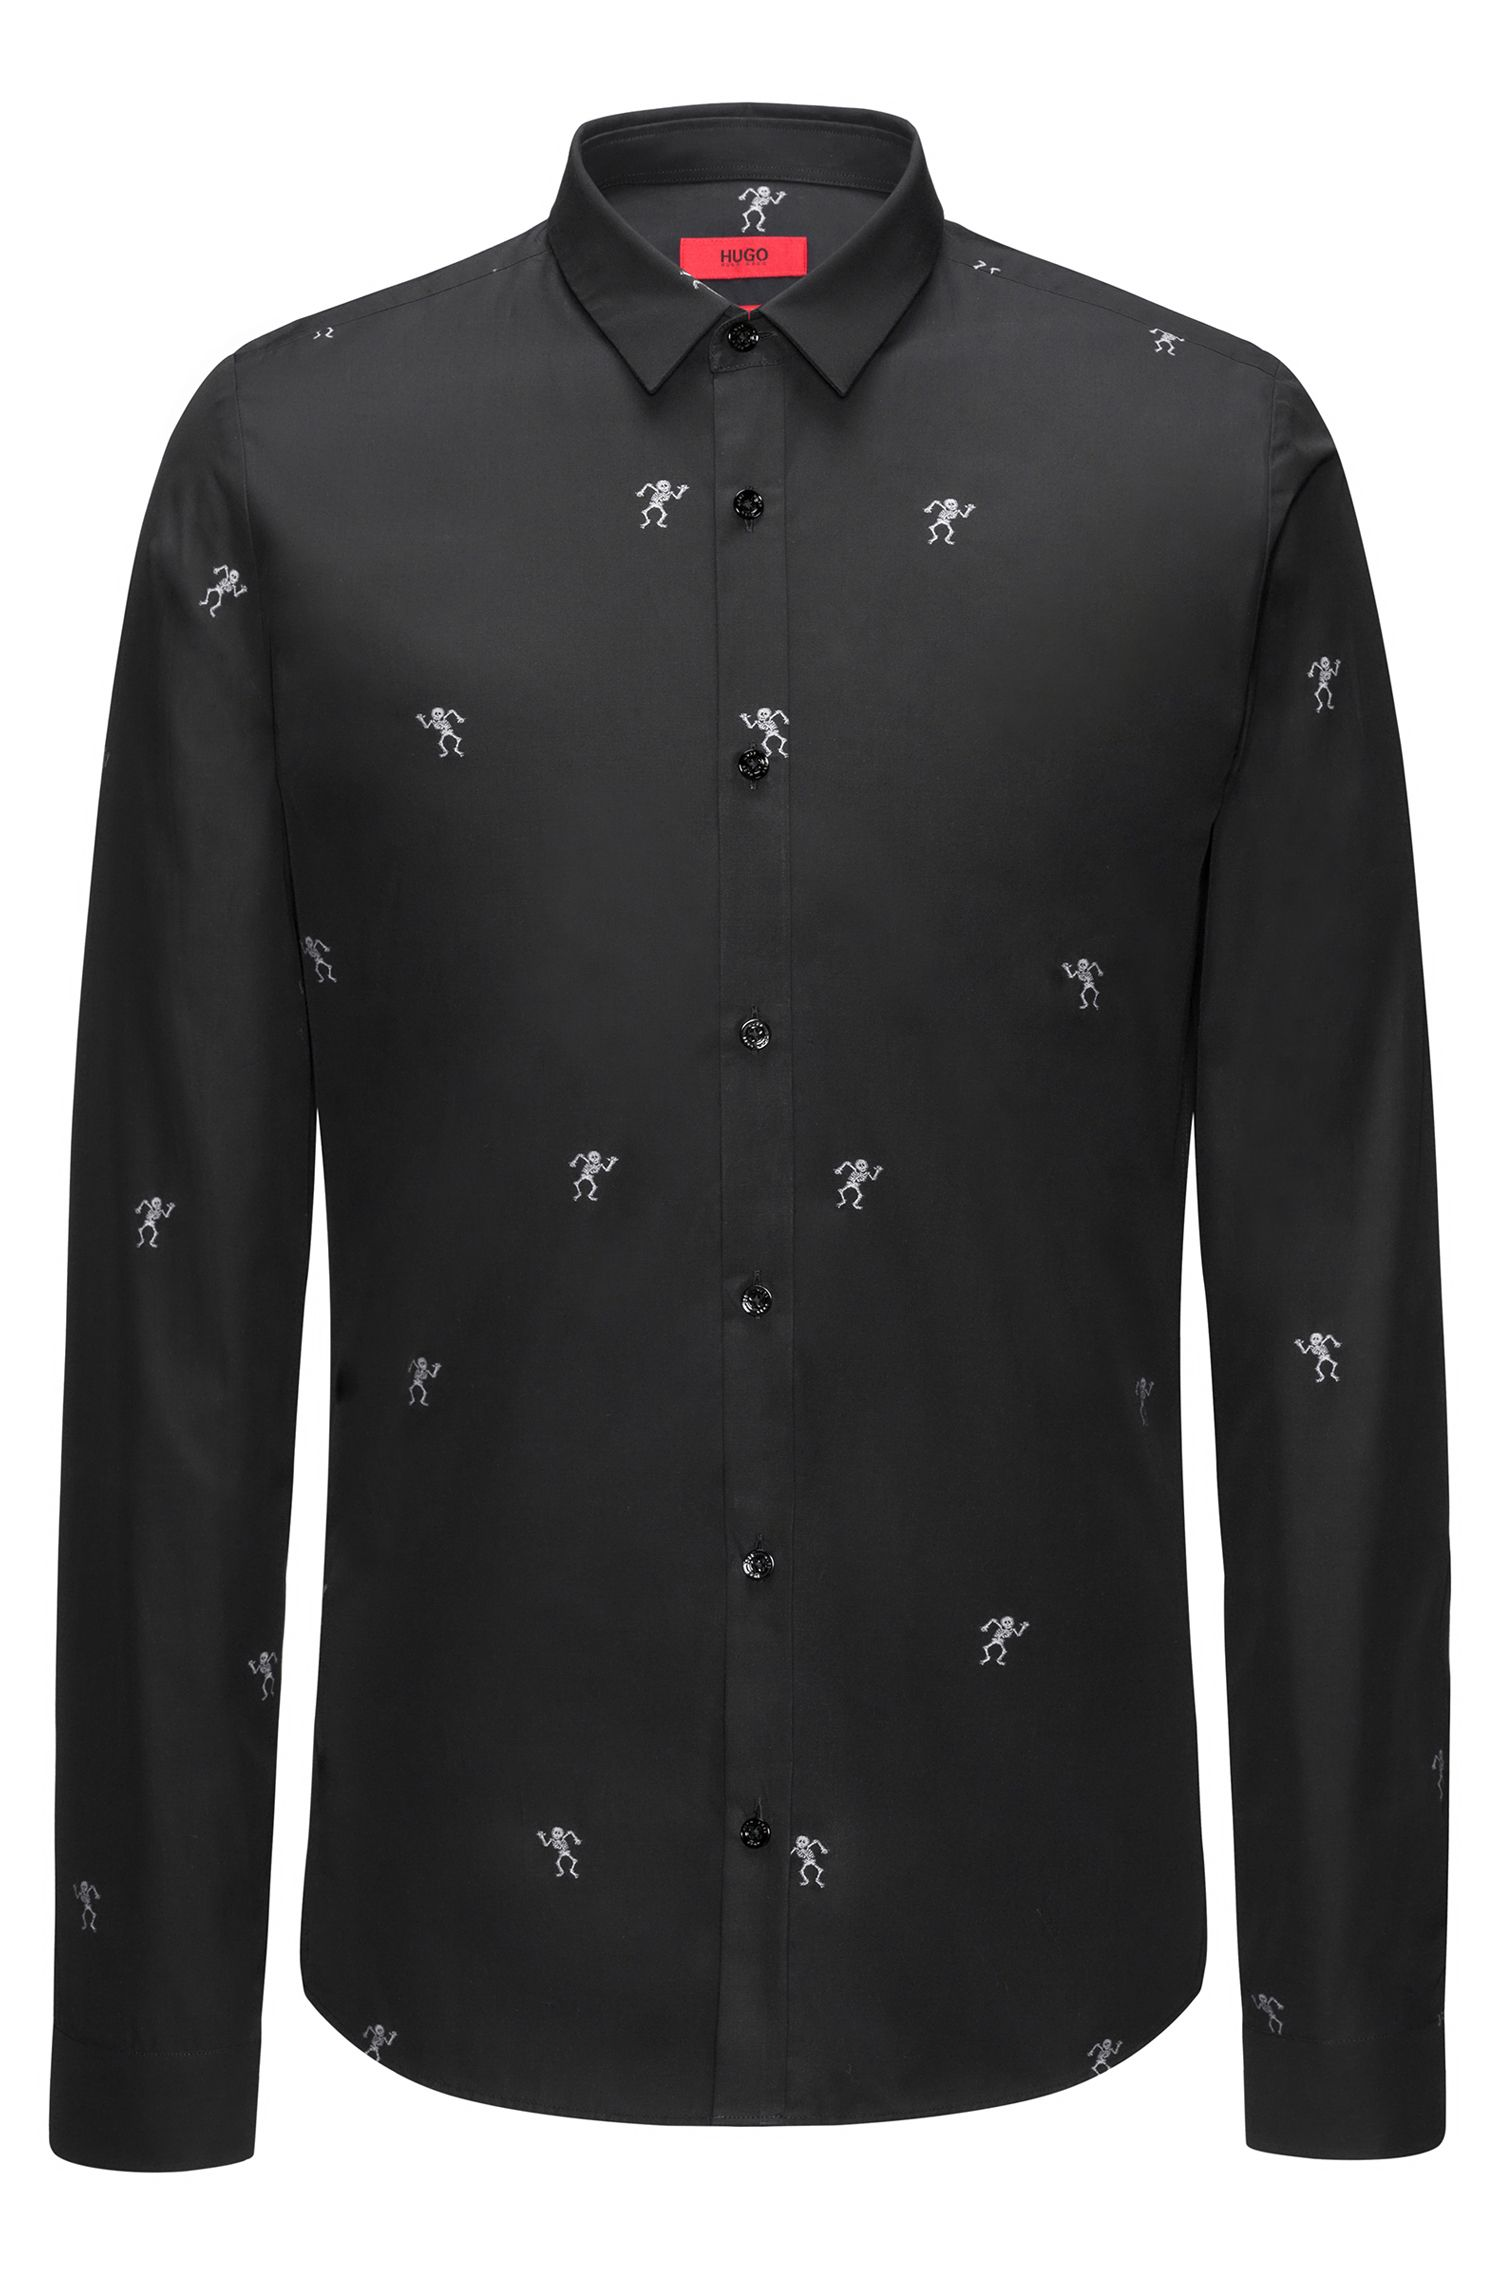 Extra-slim-fit cotton shirt with dancing skeletons fil coupé